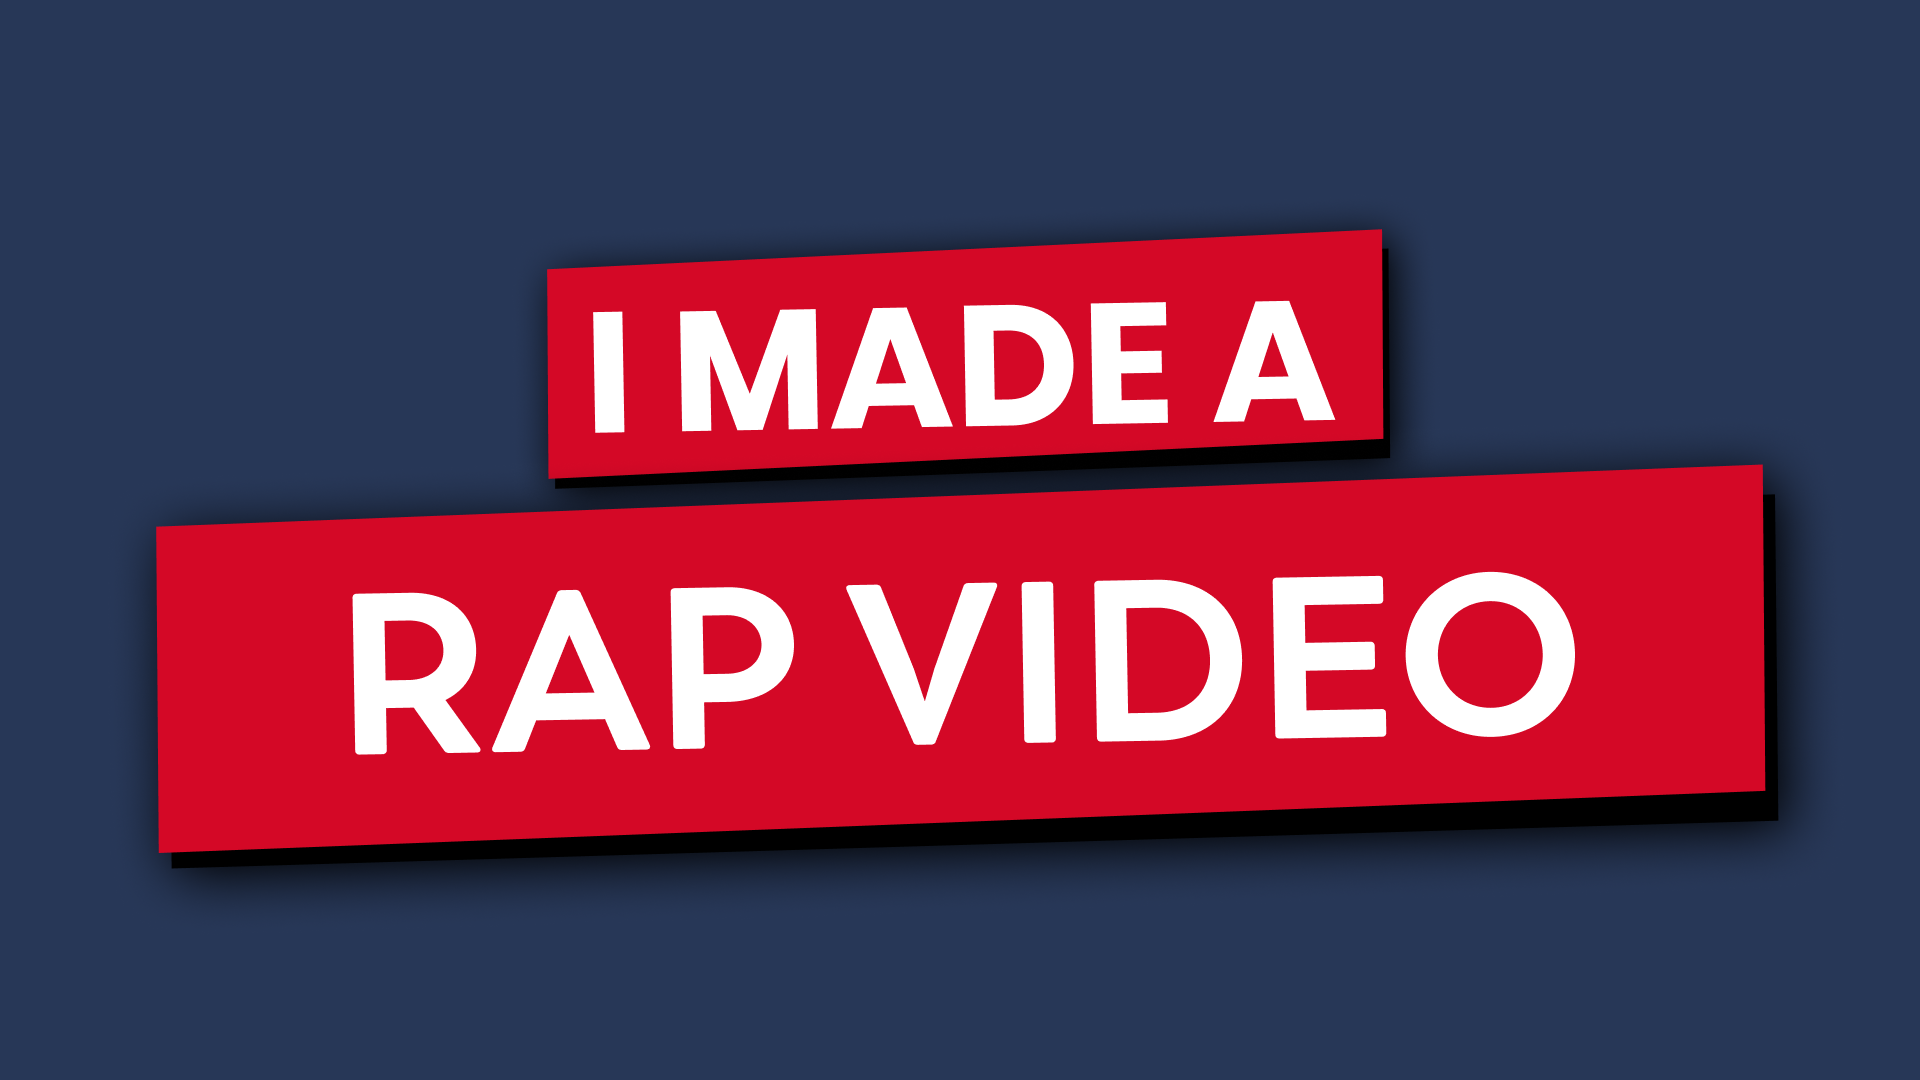 I Created a Developer Rap Video - Here's What I Learned